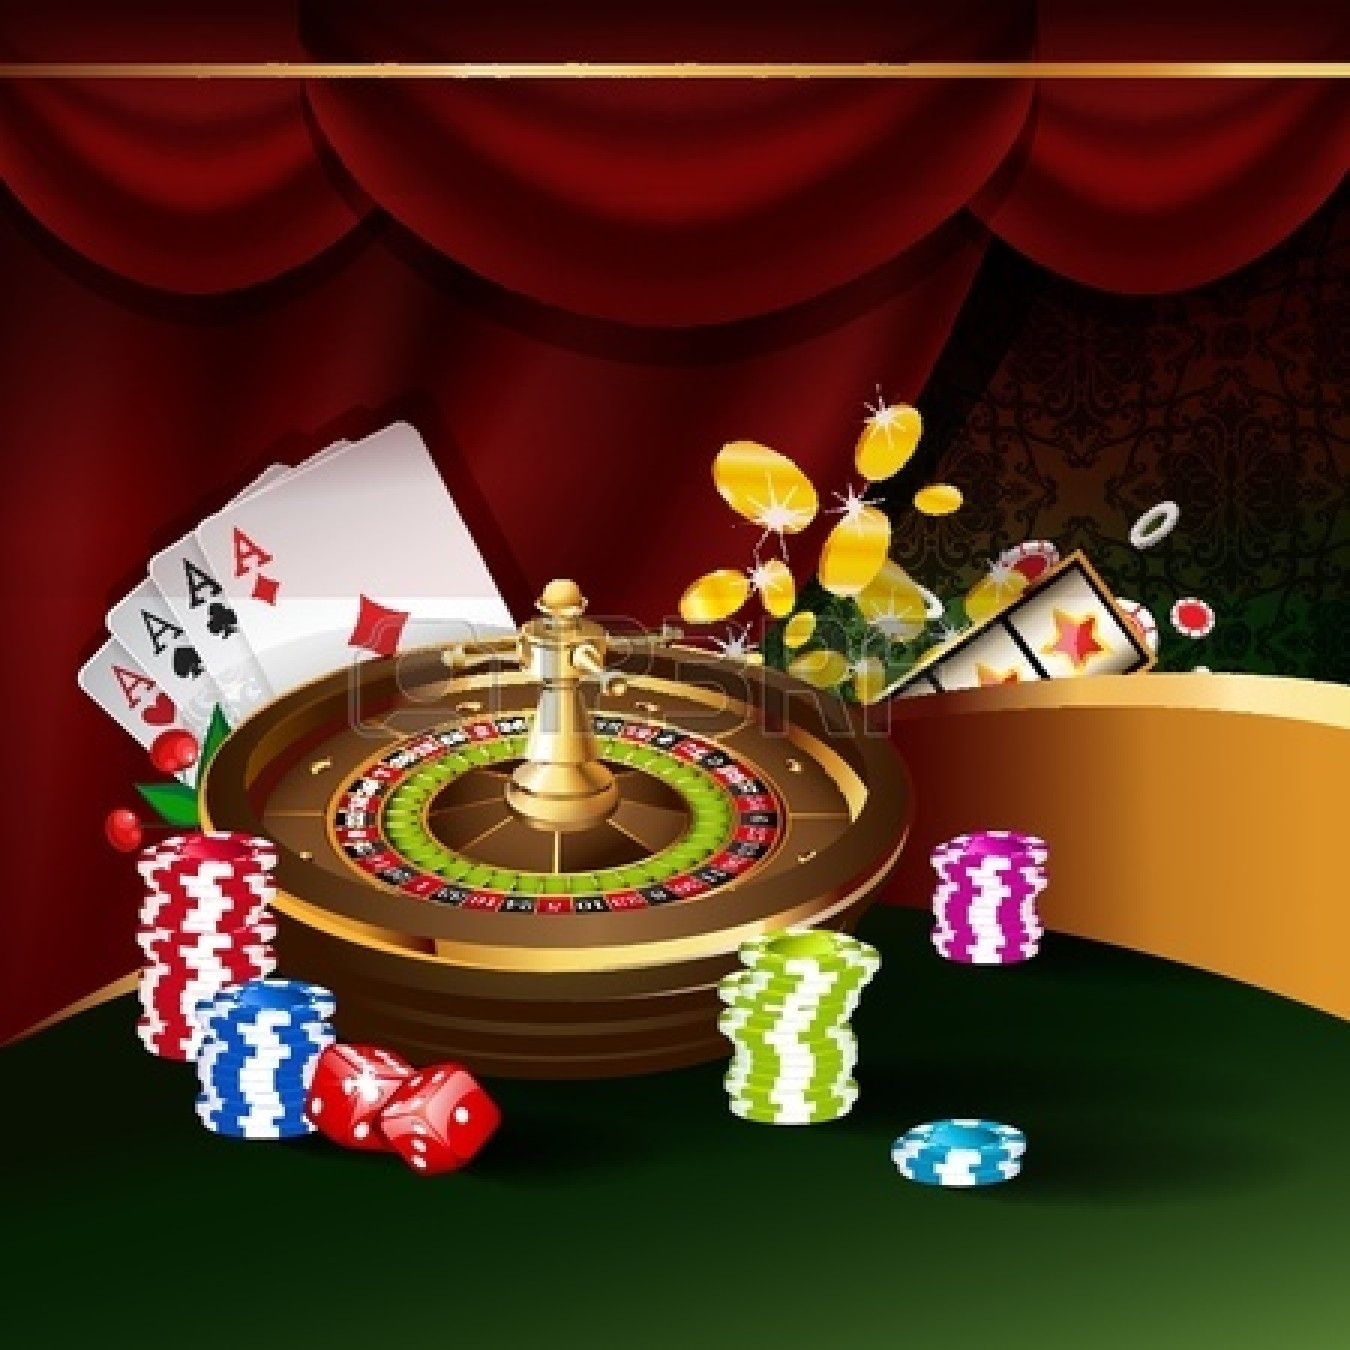 Advantages and disadvantages of legalizing gambling